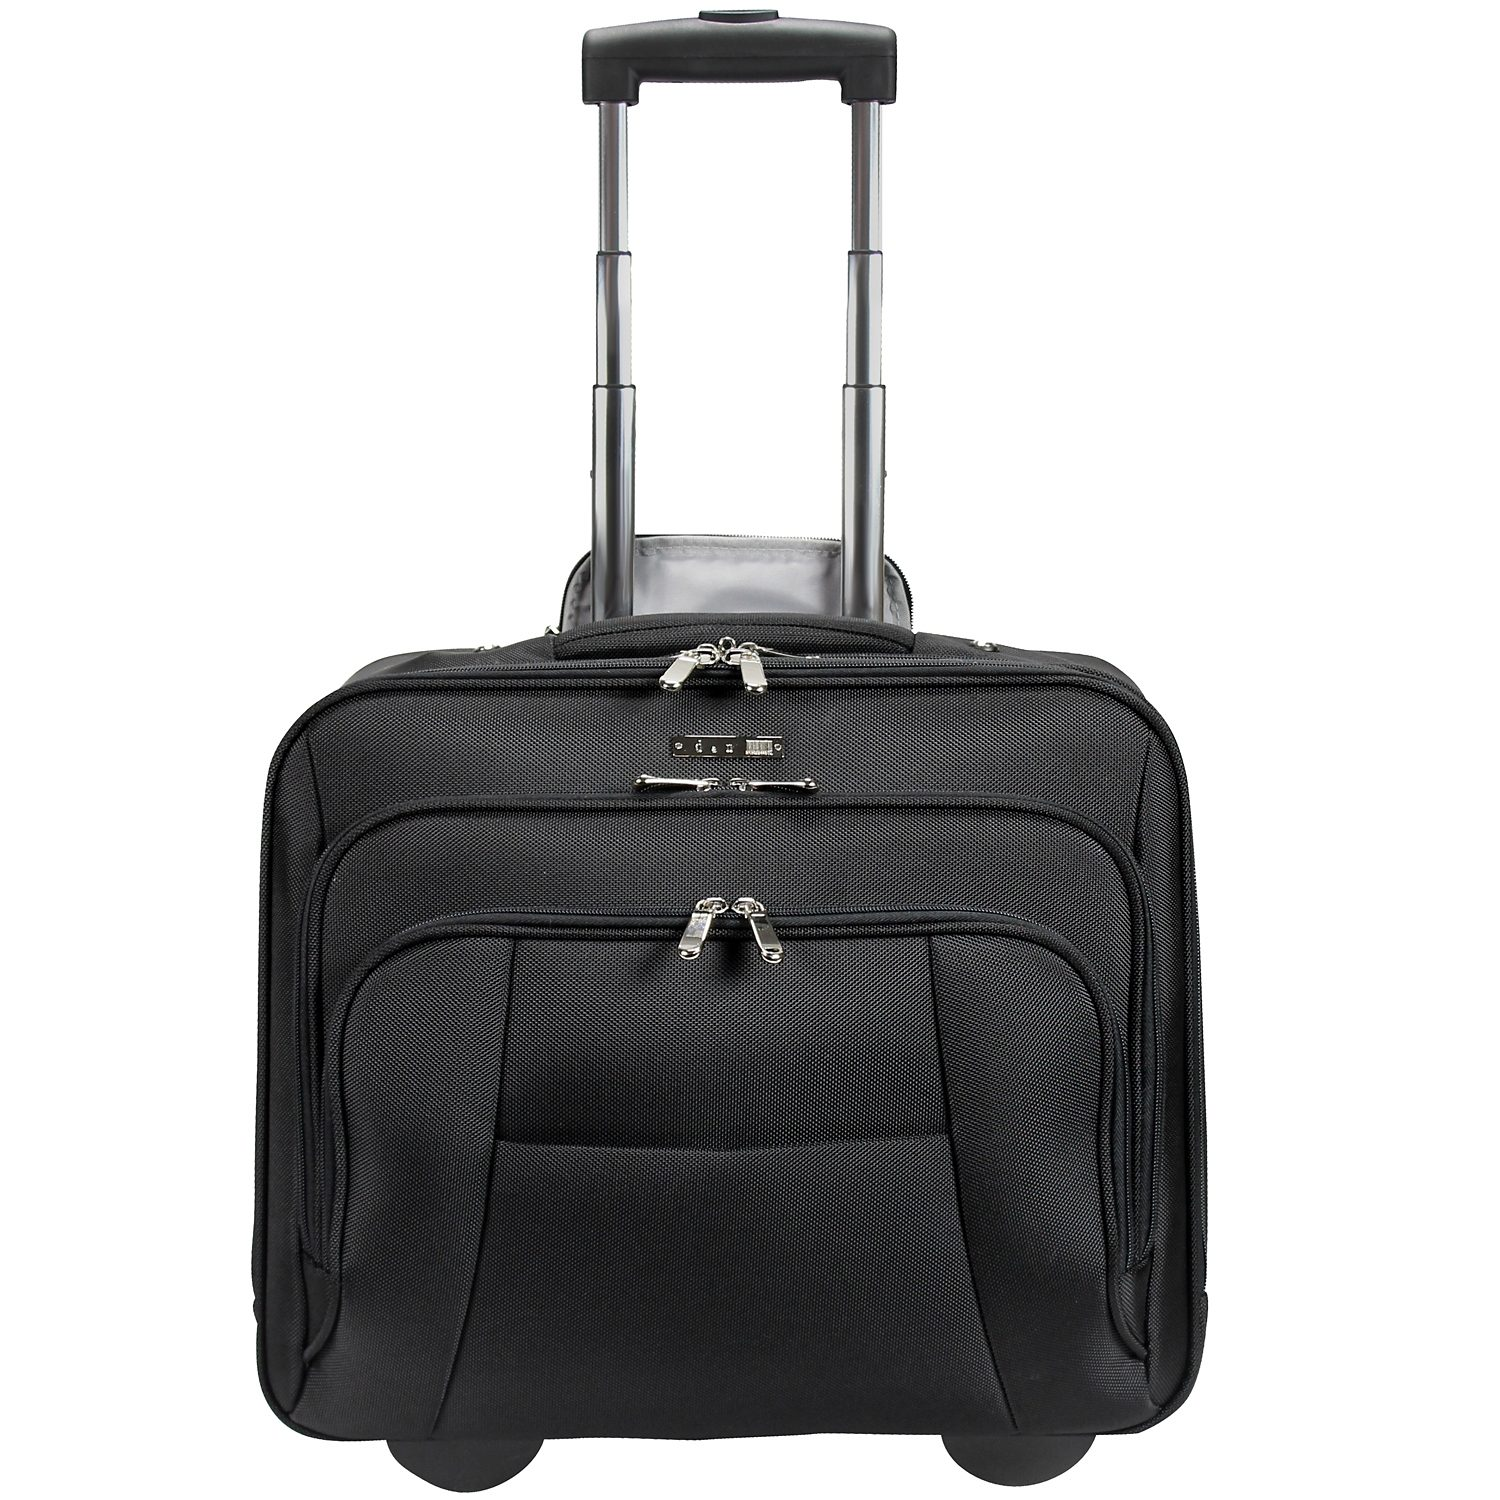 d & n Bussiness & Travel Business-Trolley 41 cm Laptopfach